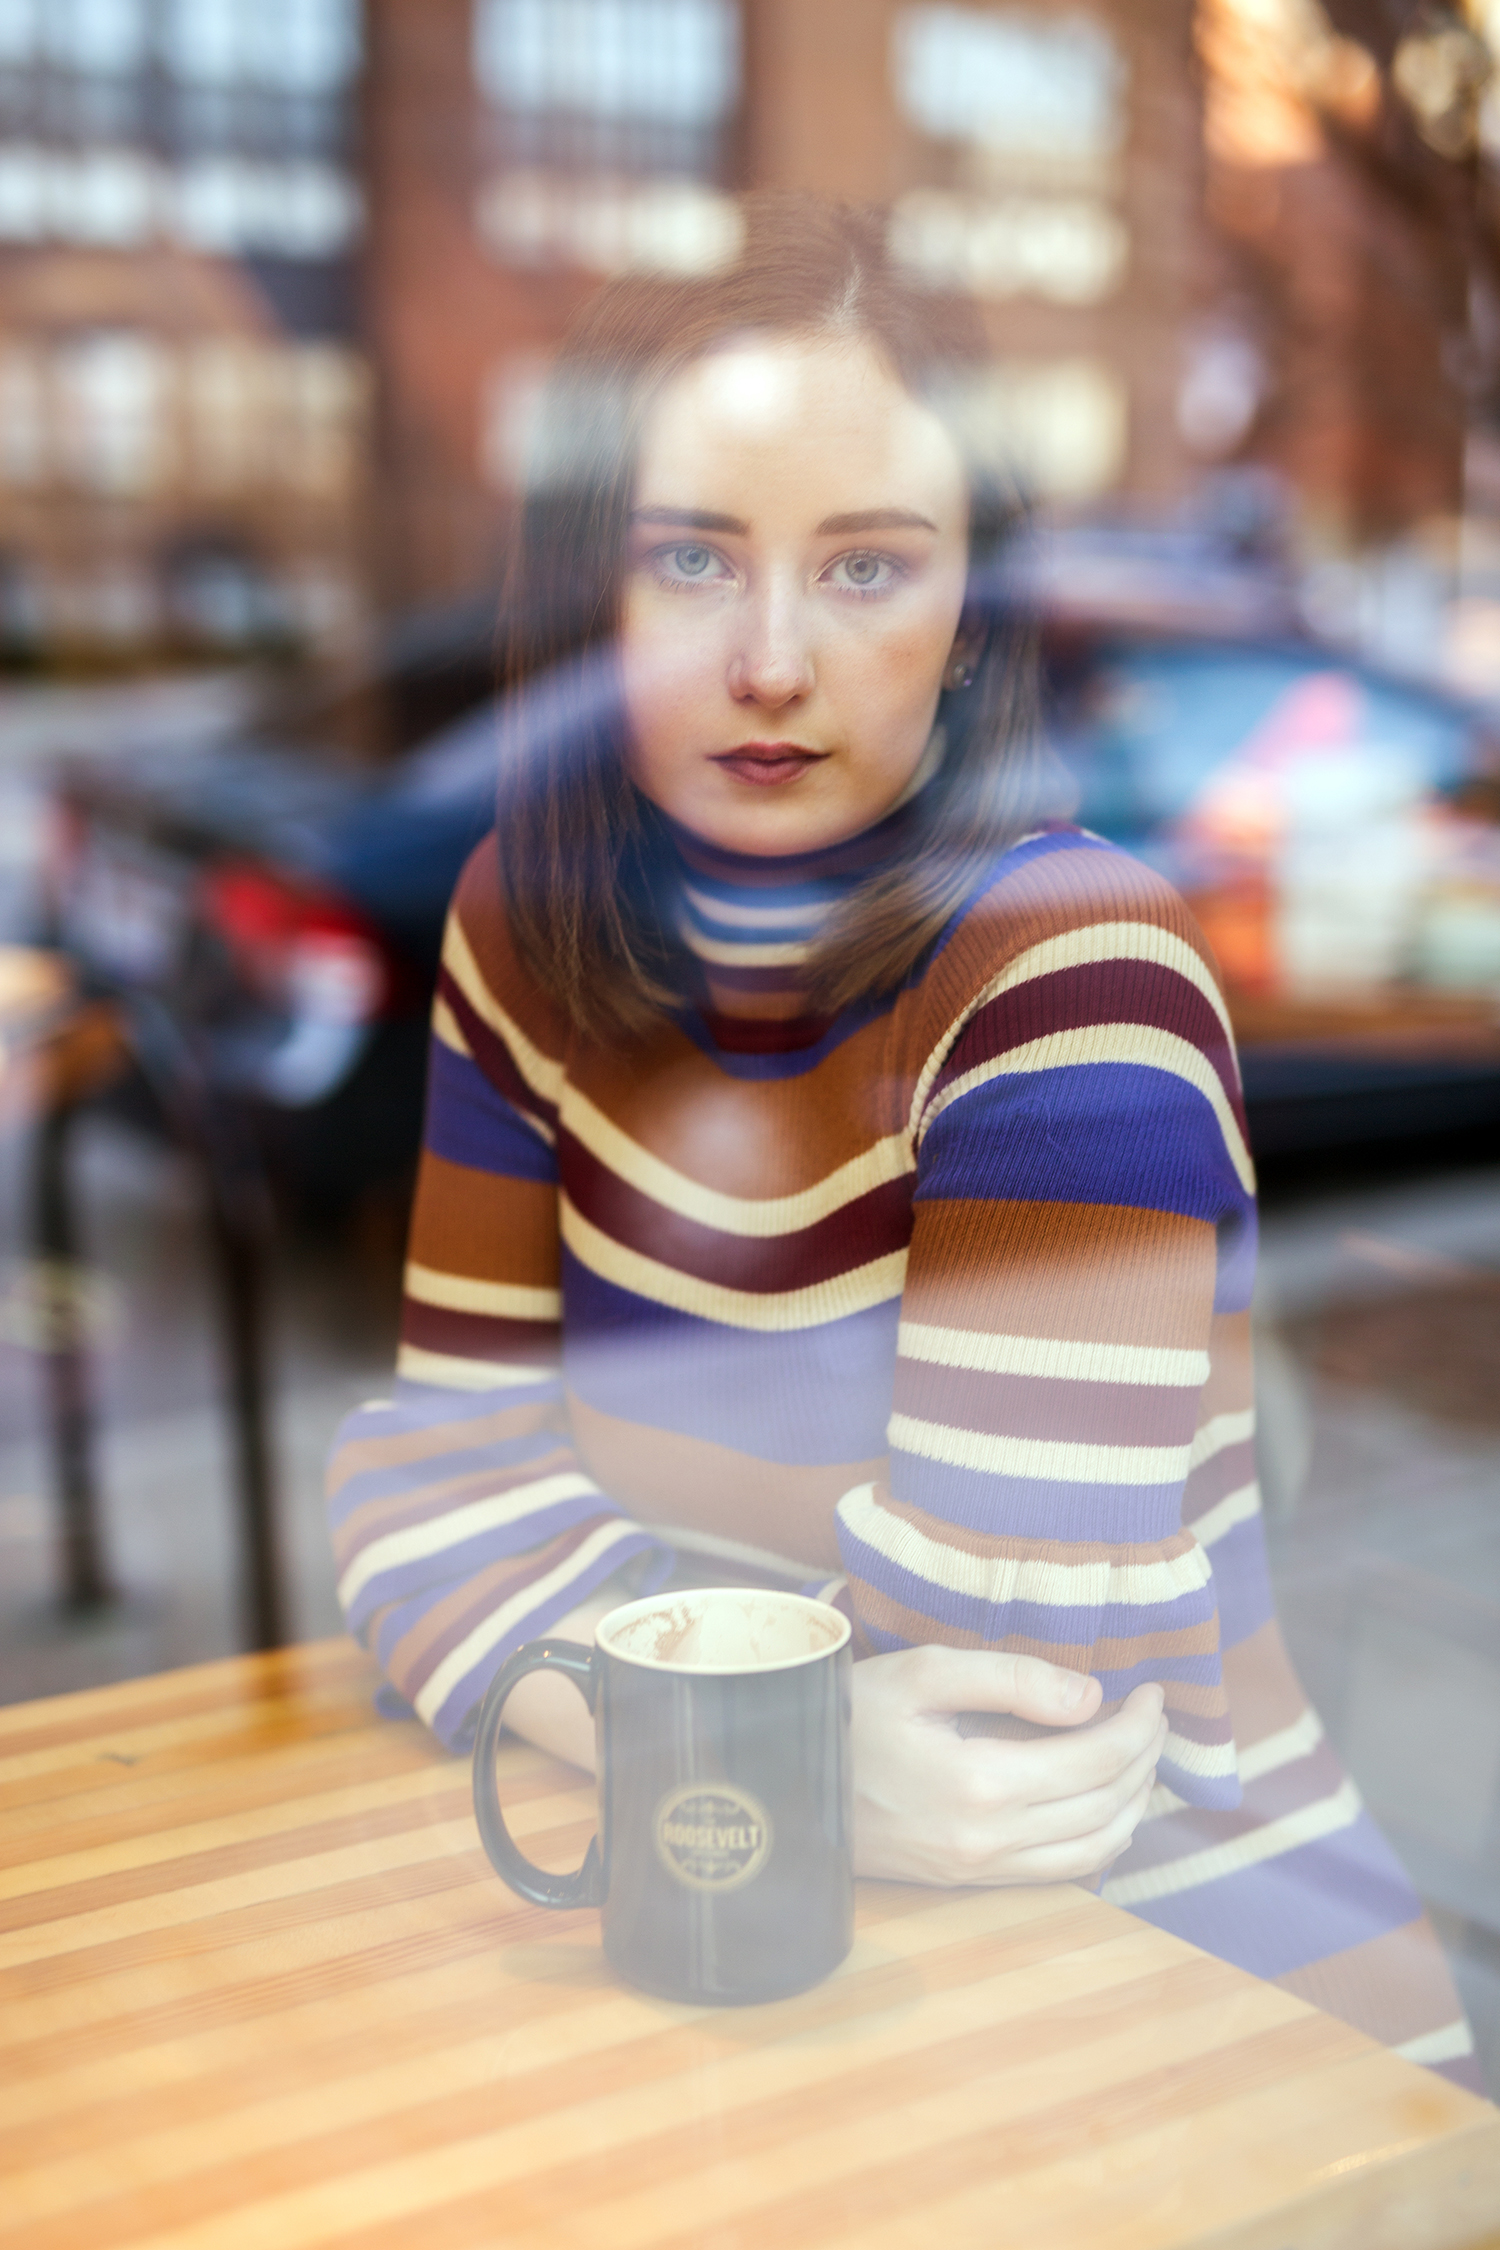 photograph through the window of a girl sitting at a table with hot chocloate